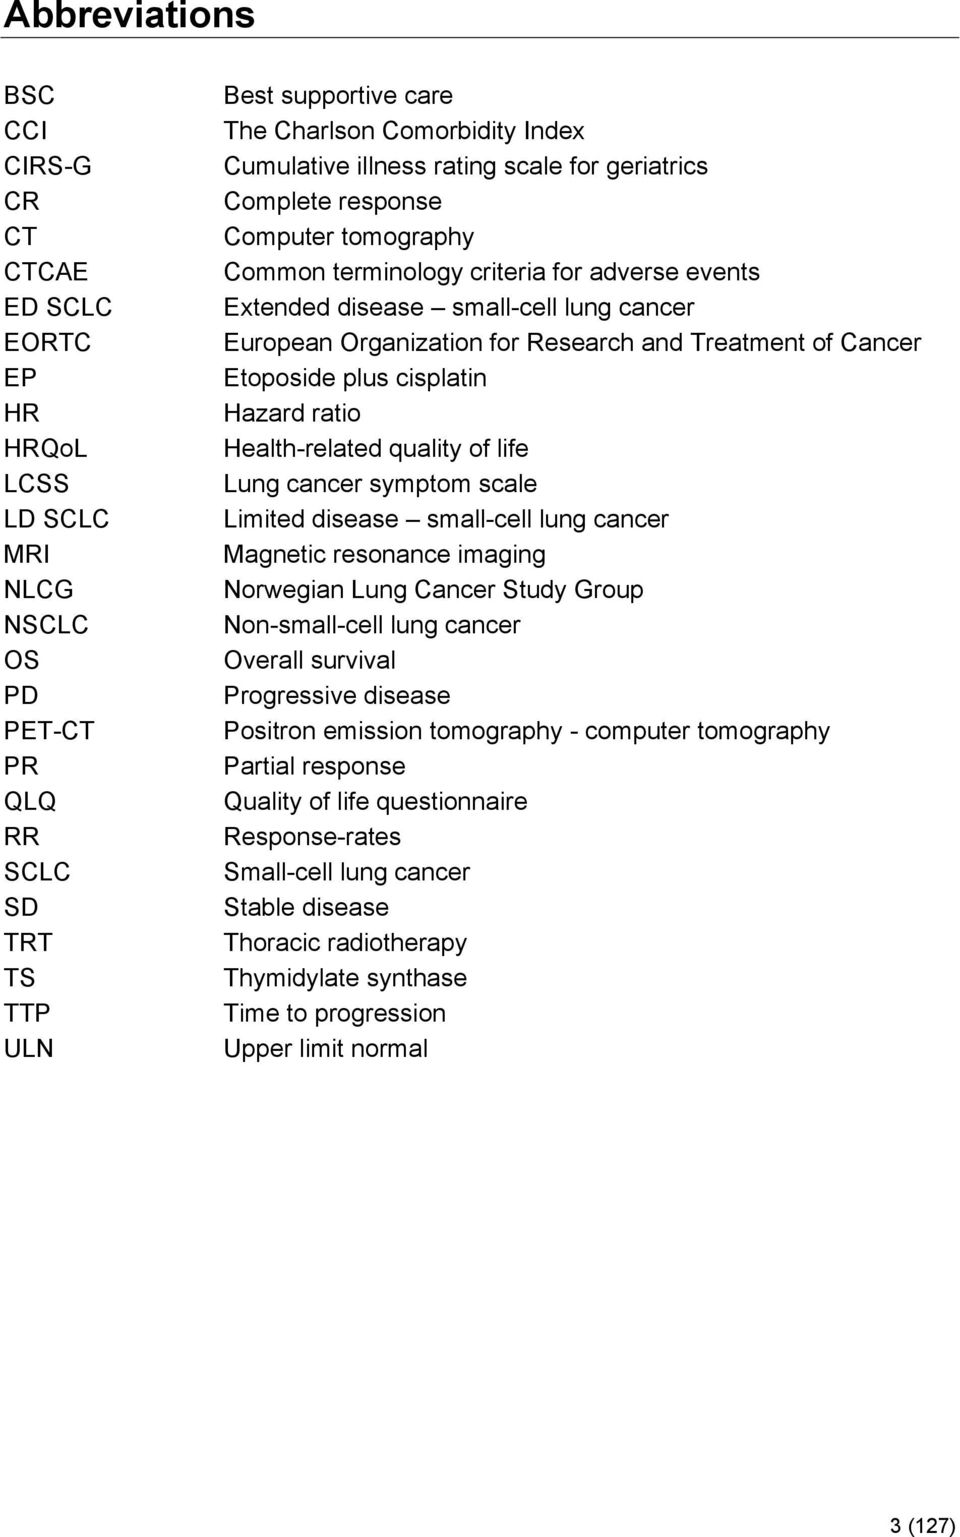 Research and Treatment of Cancer Etoposide plus cisplatin Hazard ratio Health-related quality of life Lung cancer symptom scale Limited disease small-cell lung cancer Magnetic resonance imaging